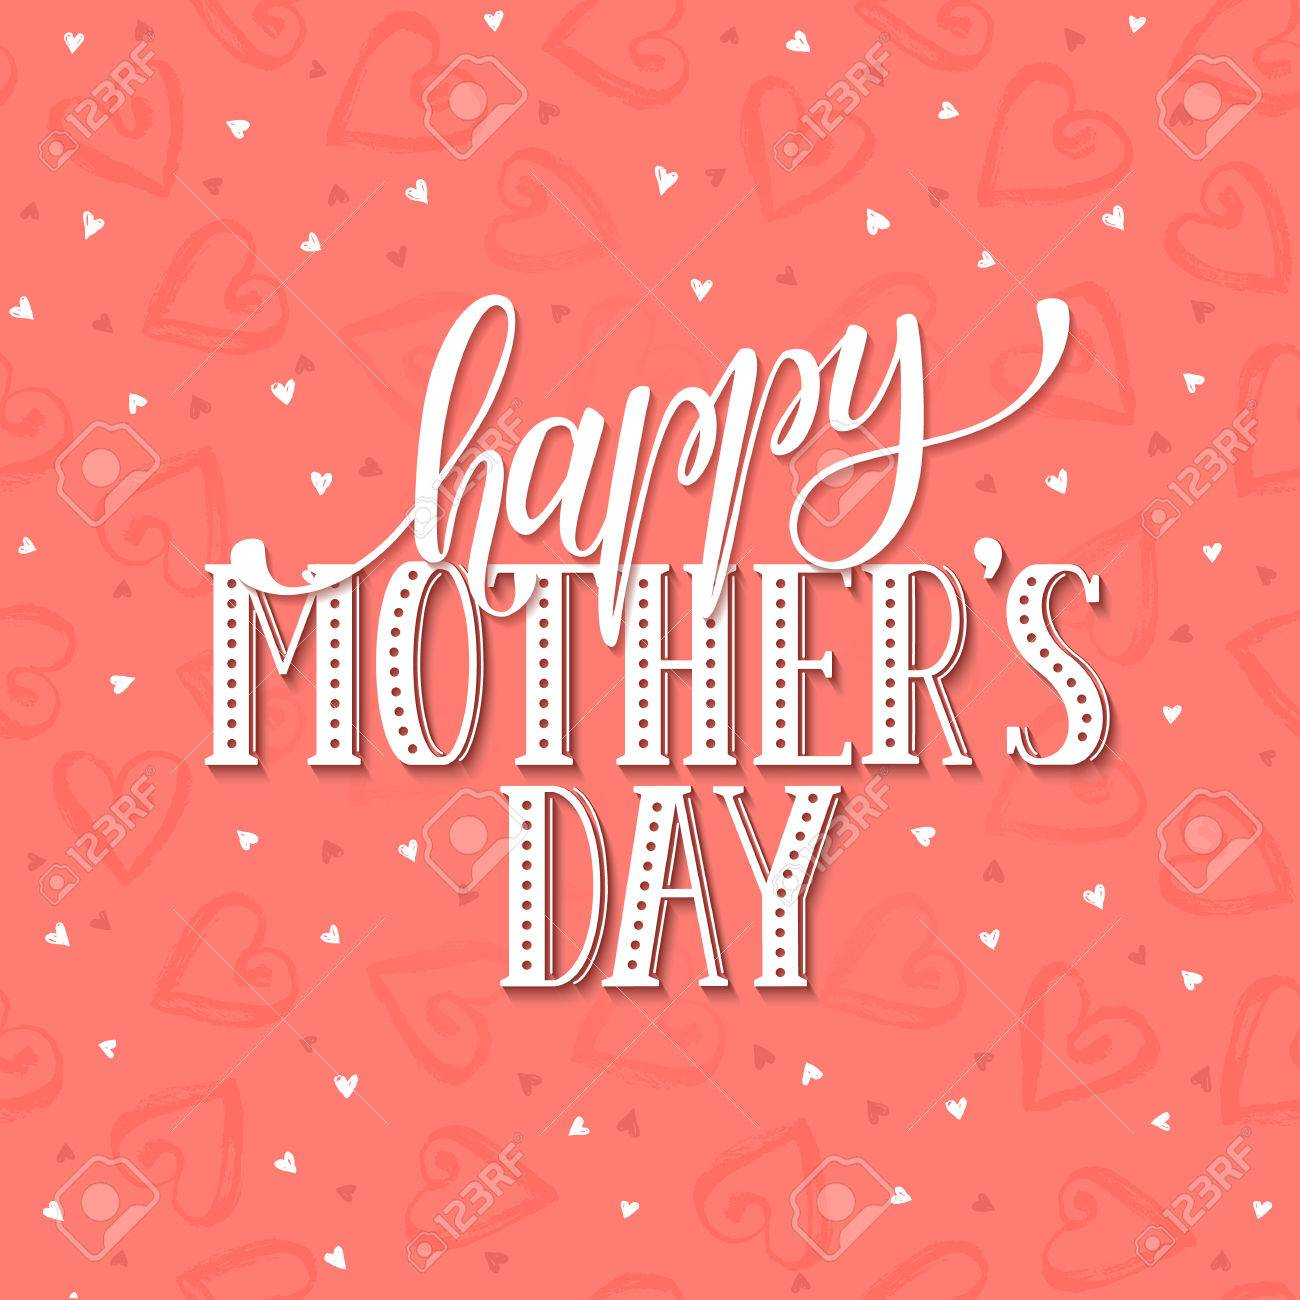 Mothers day greeting card template happy mothers day wording mothers day greeting card template happy mothers day wording with dry brush hearts on background kristyandbryce Choice Image